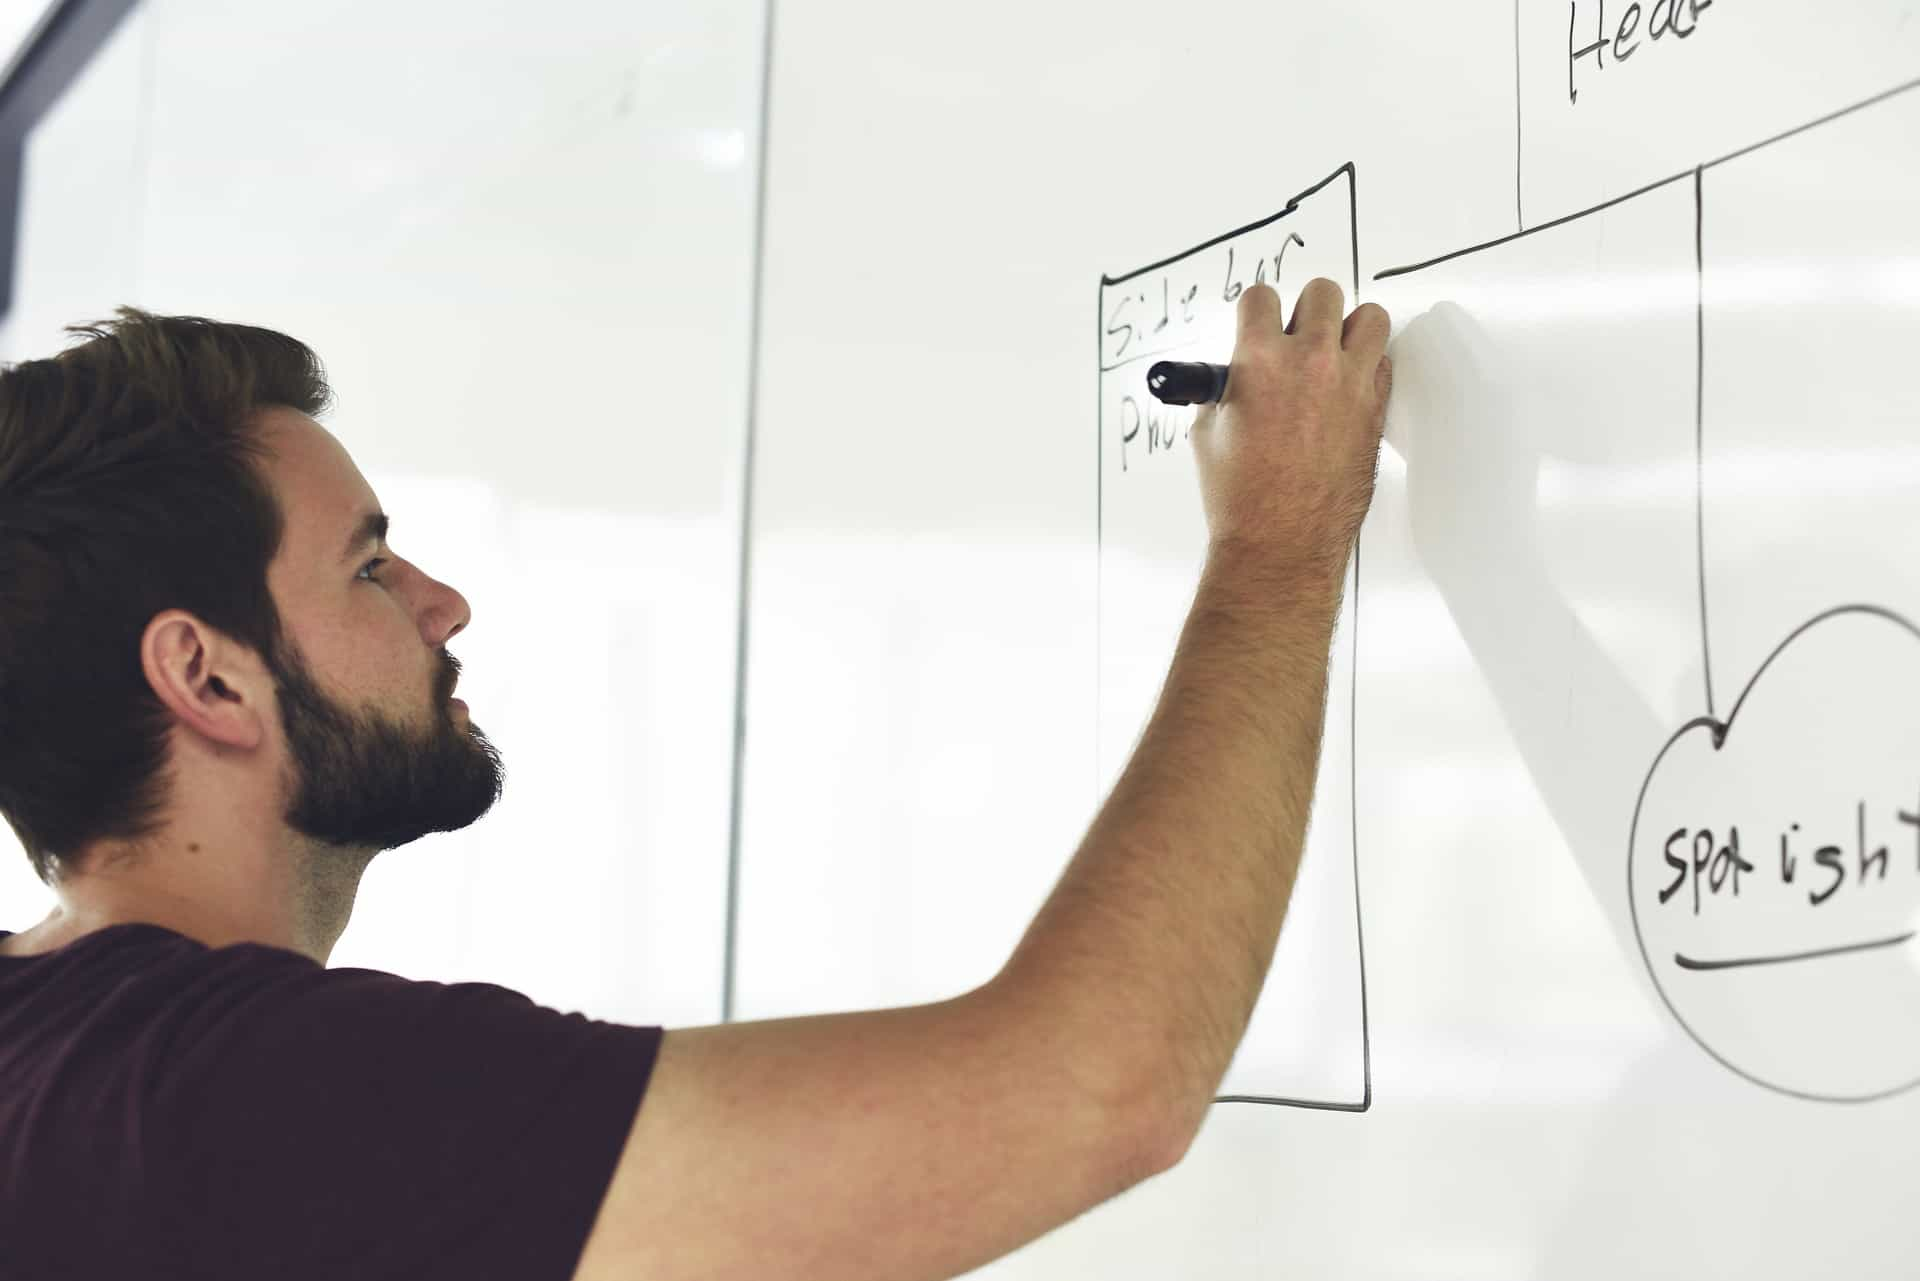 Man drawing on a whiteboard